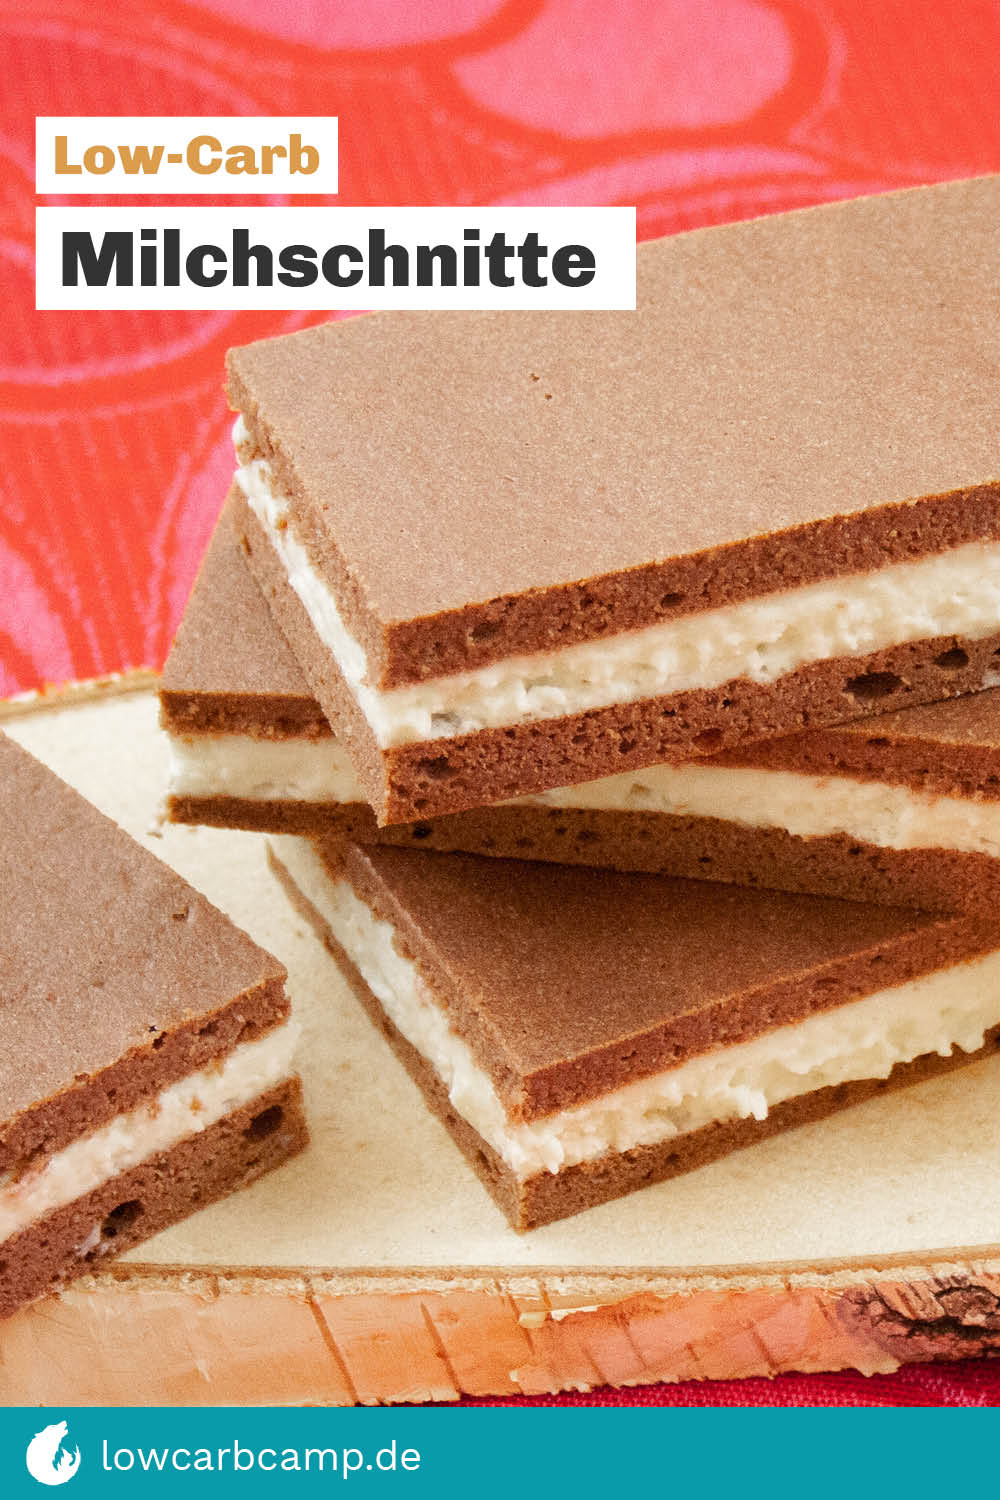 Milchschnitte Low-Carb